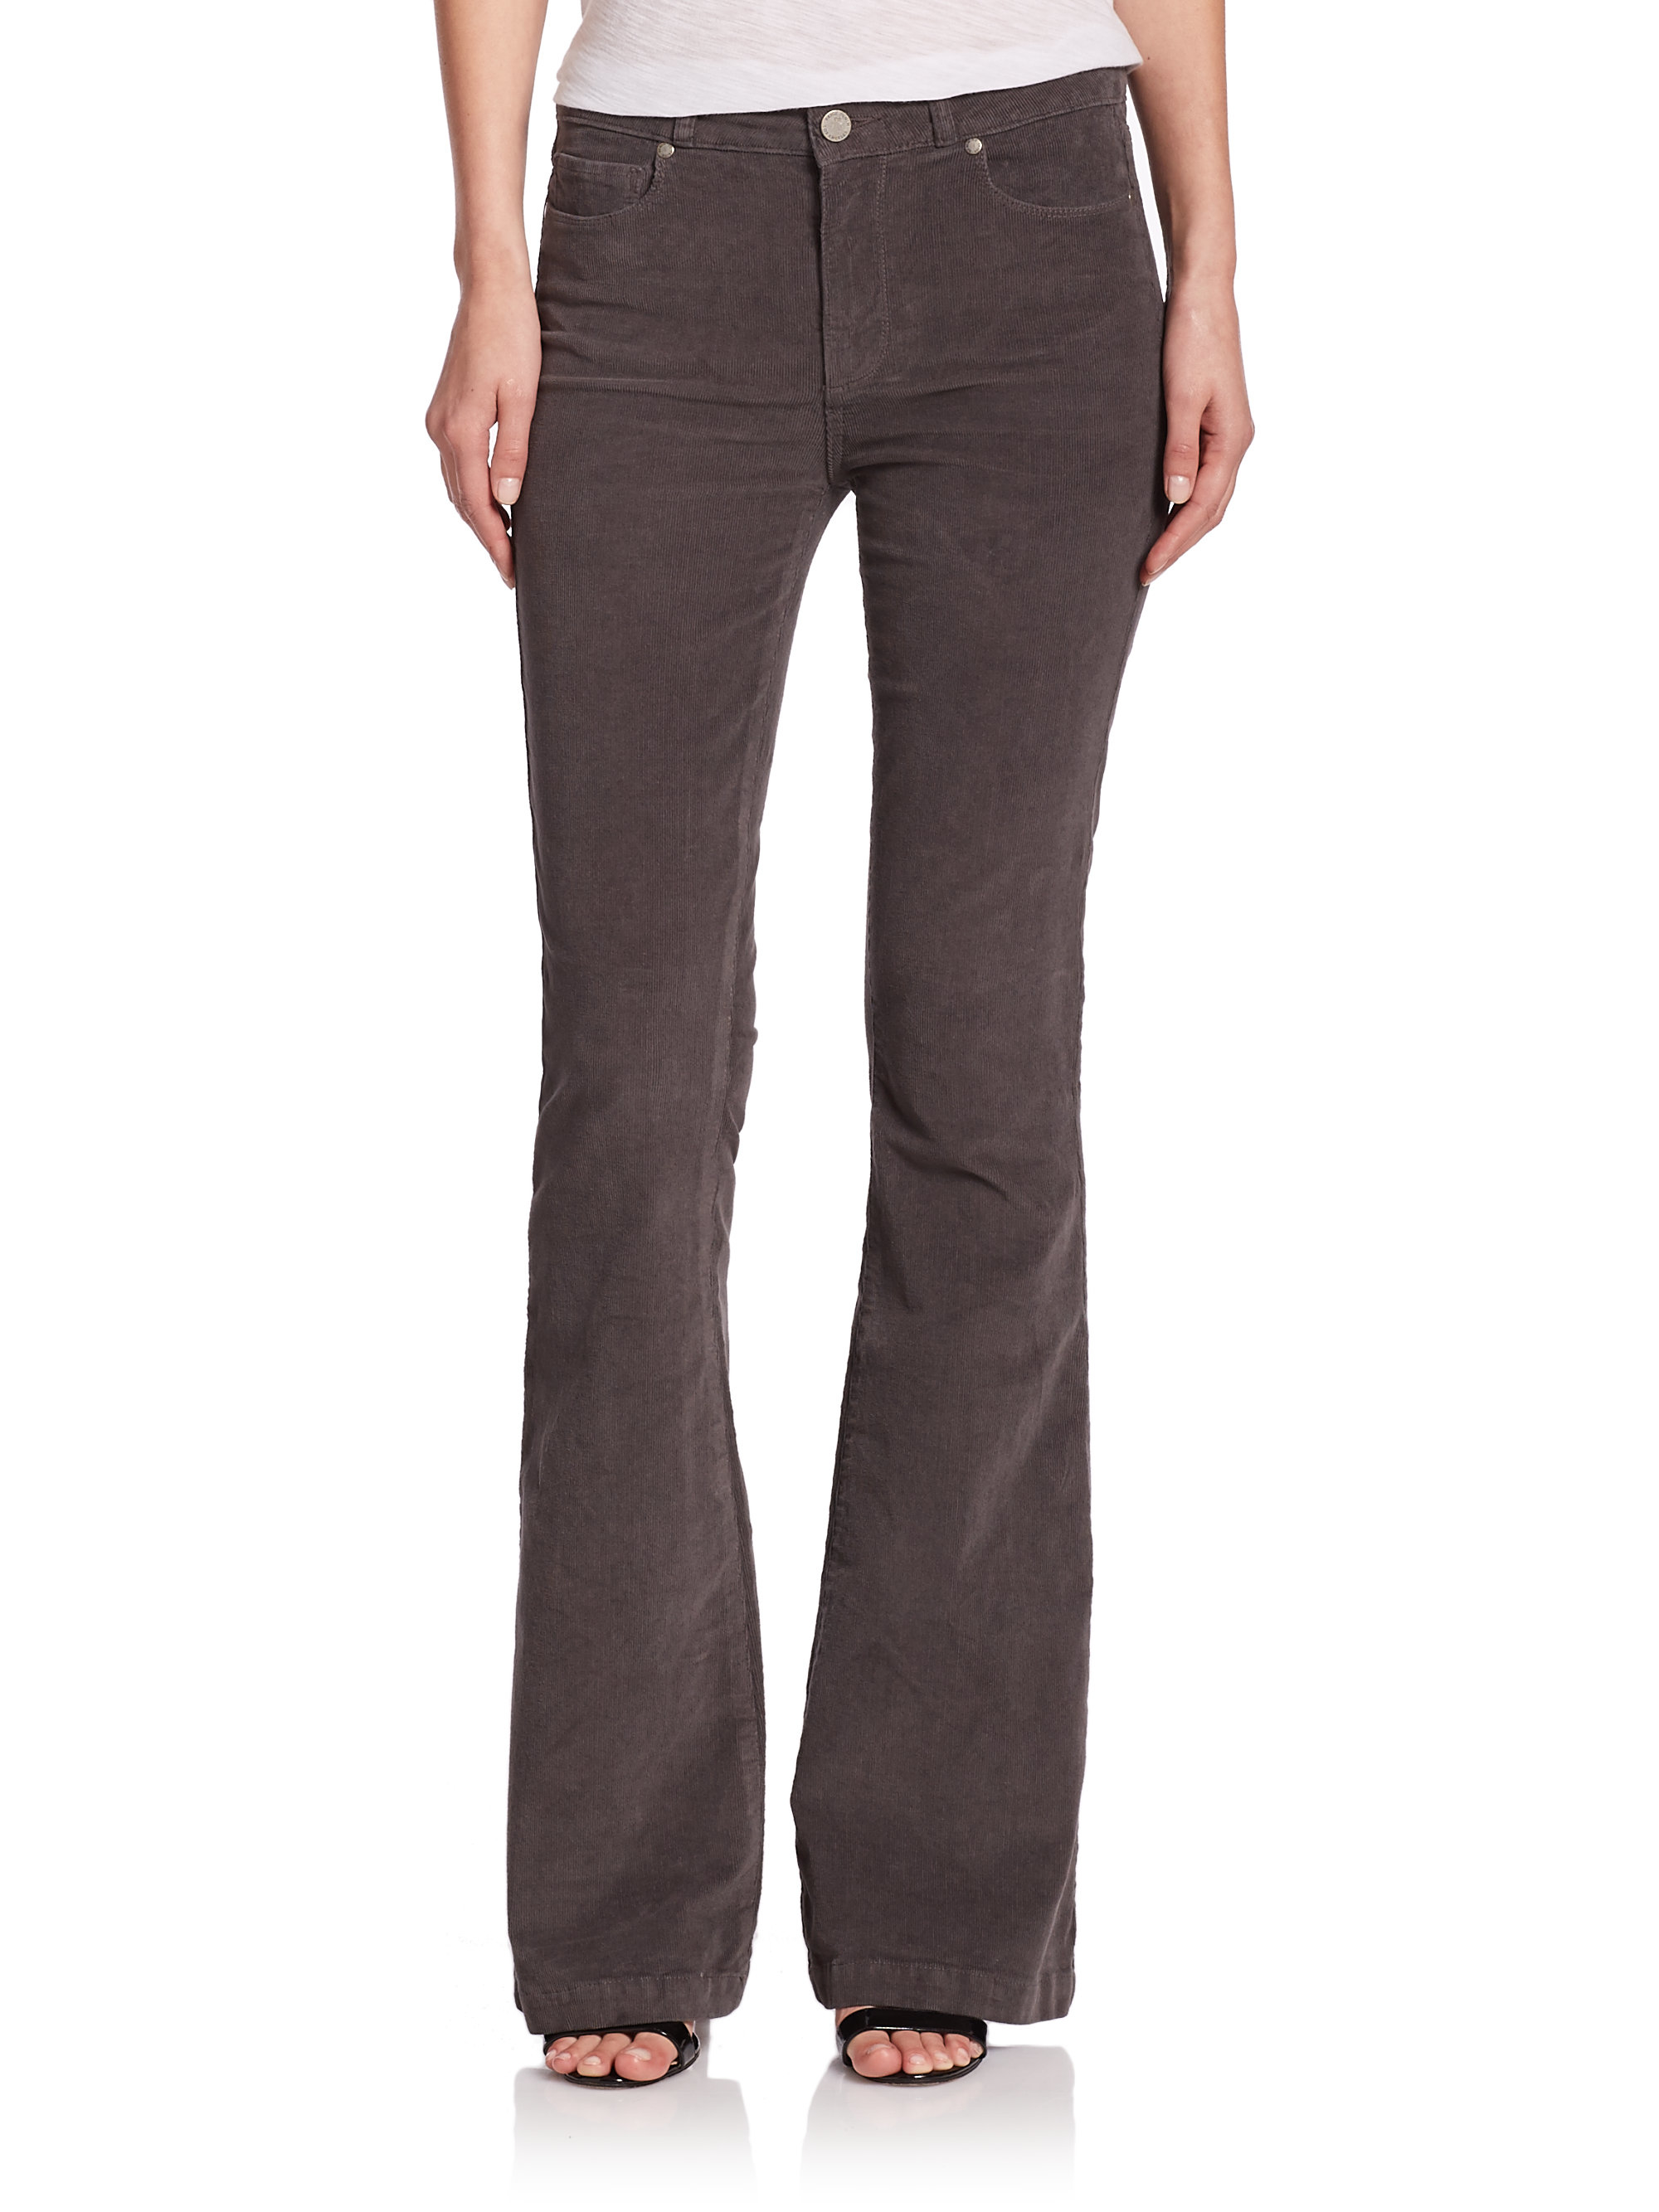 Paige Canyon High-rise Corduroy Flared Jeans in Gray | Lyst